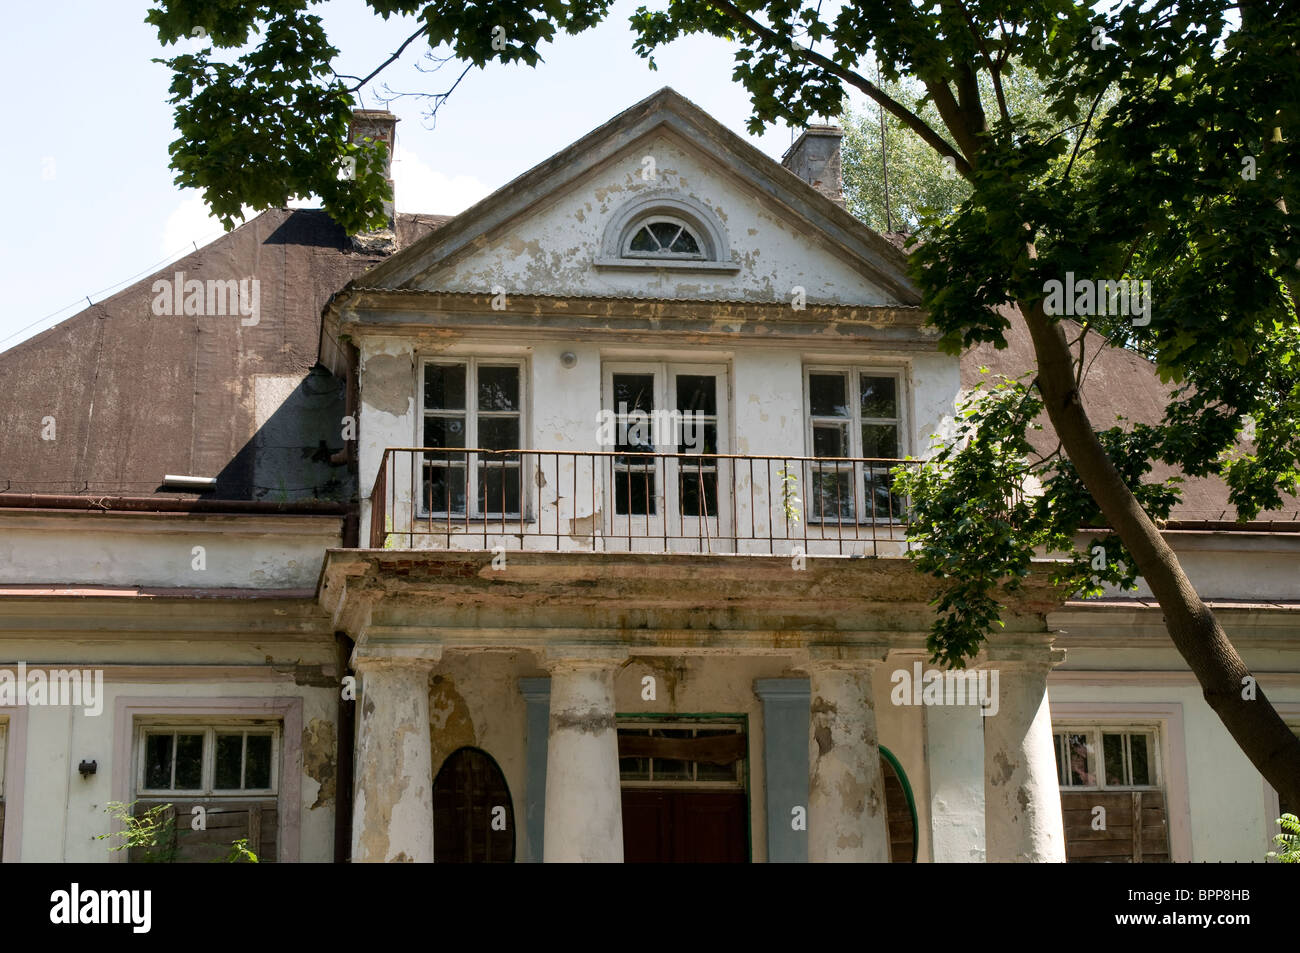 Manor house, Sochaczew, Poland - Stock Image